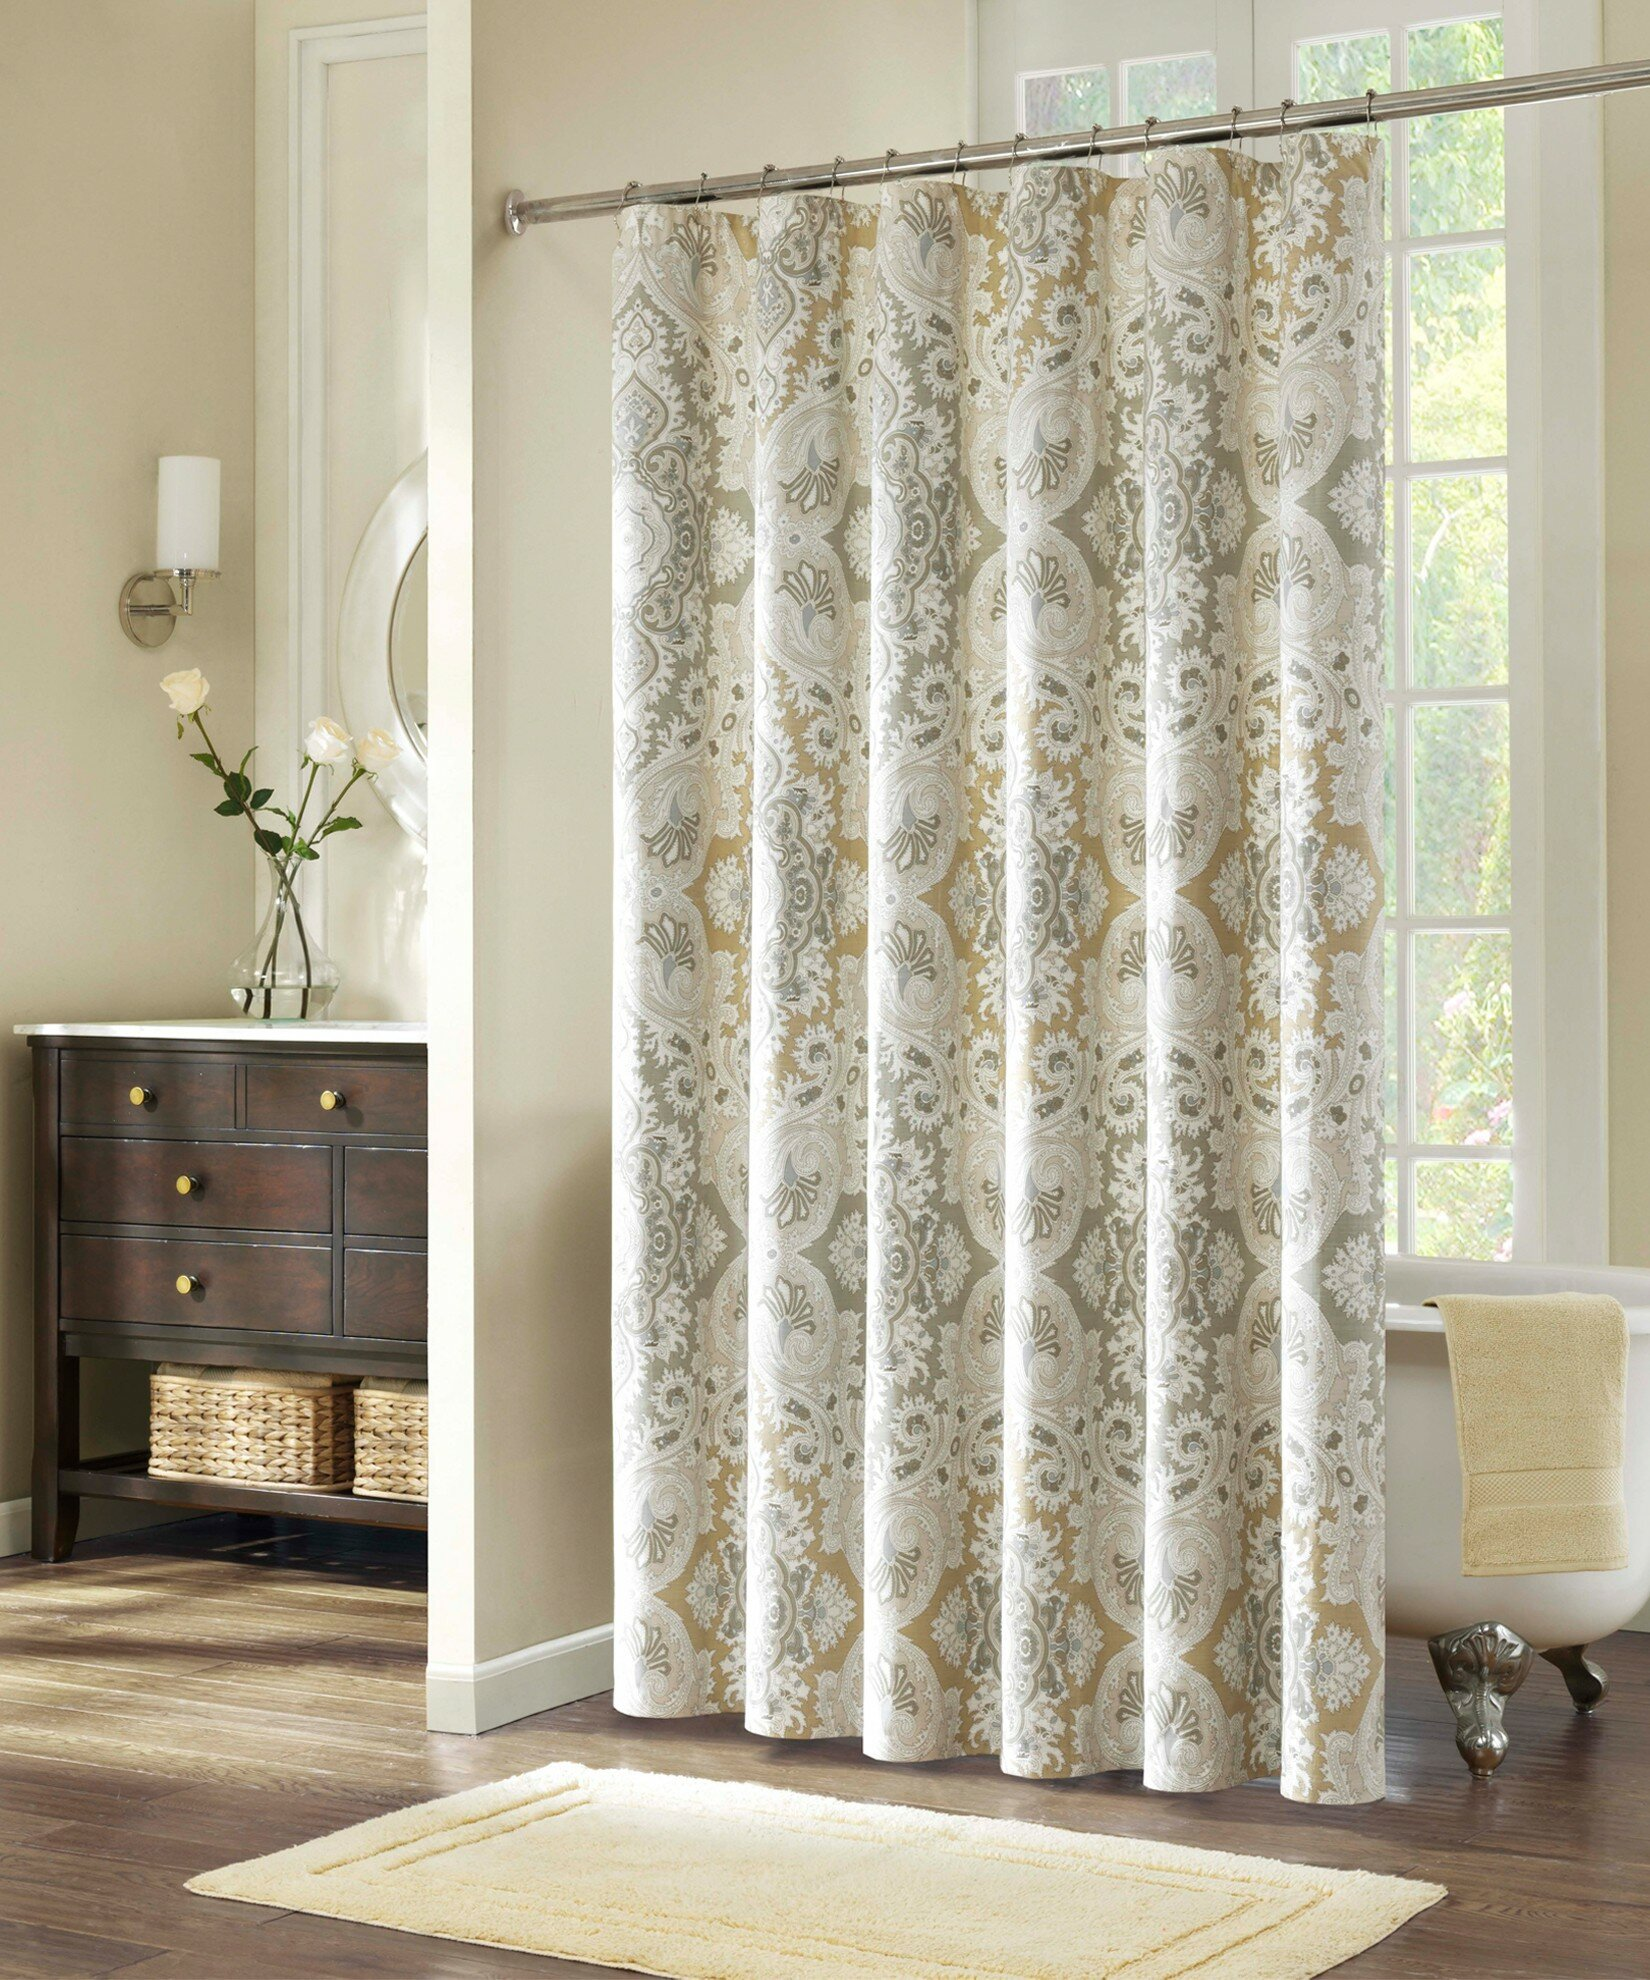 Curtain: Shower Curtain Rings Walmart | Walmart Shower Curtain ...